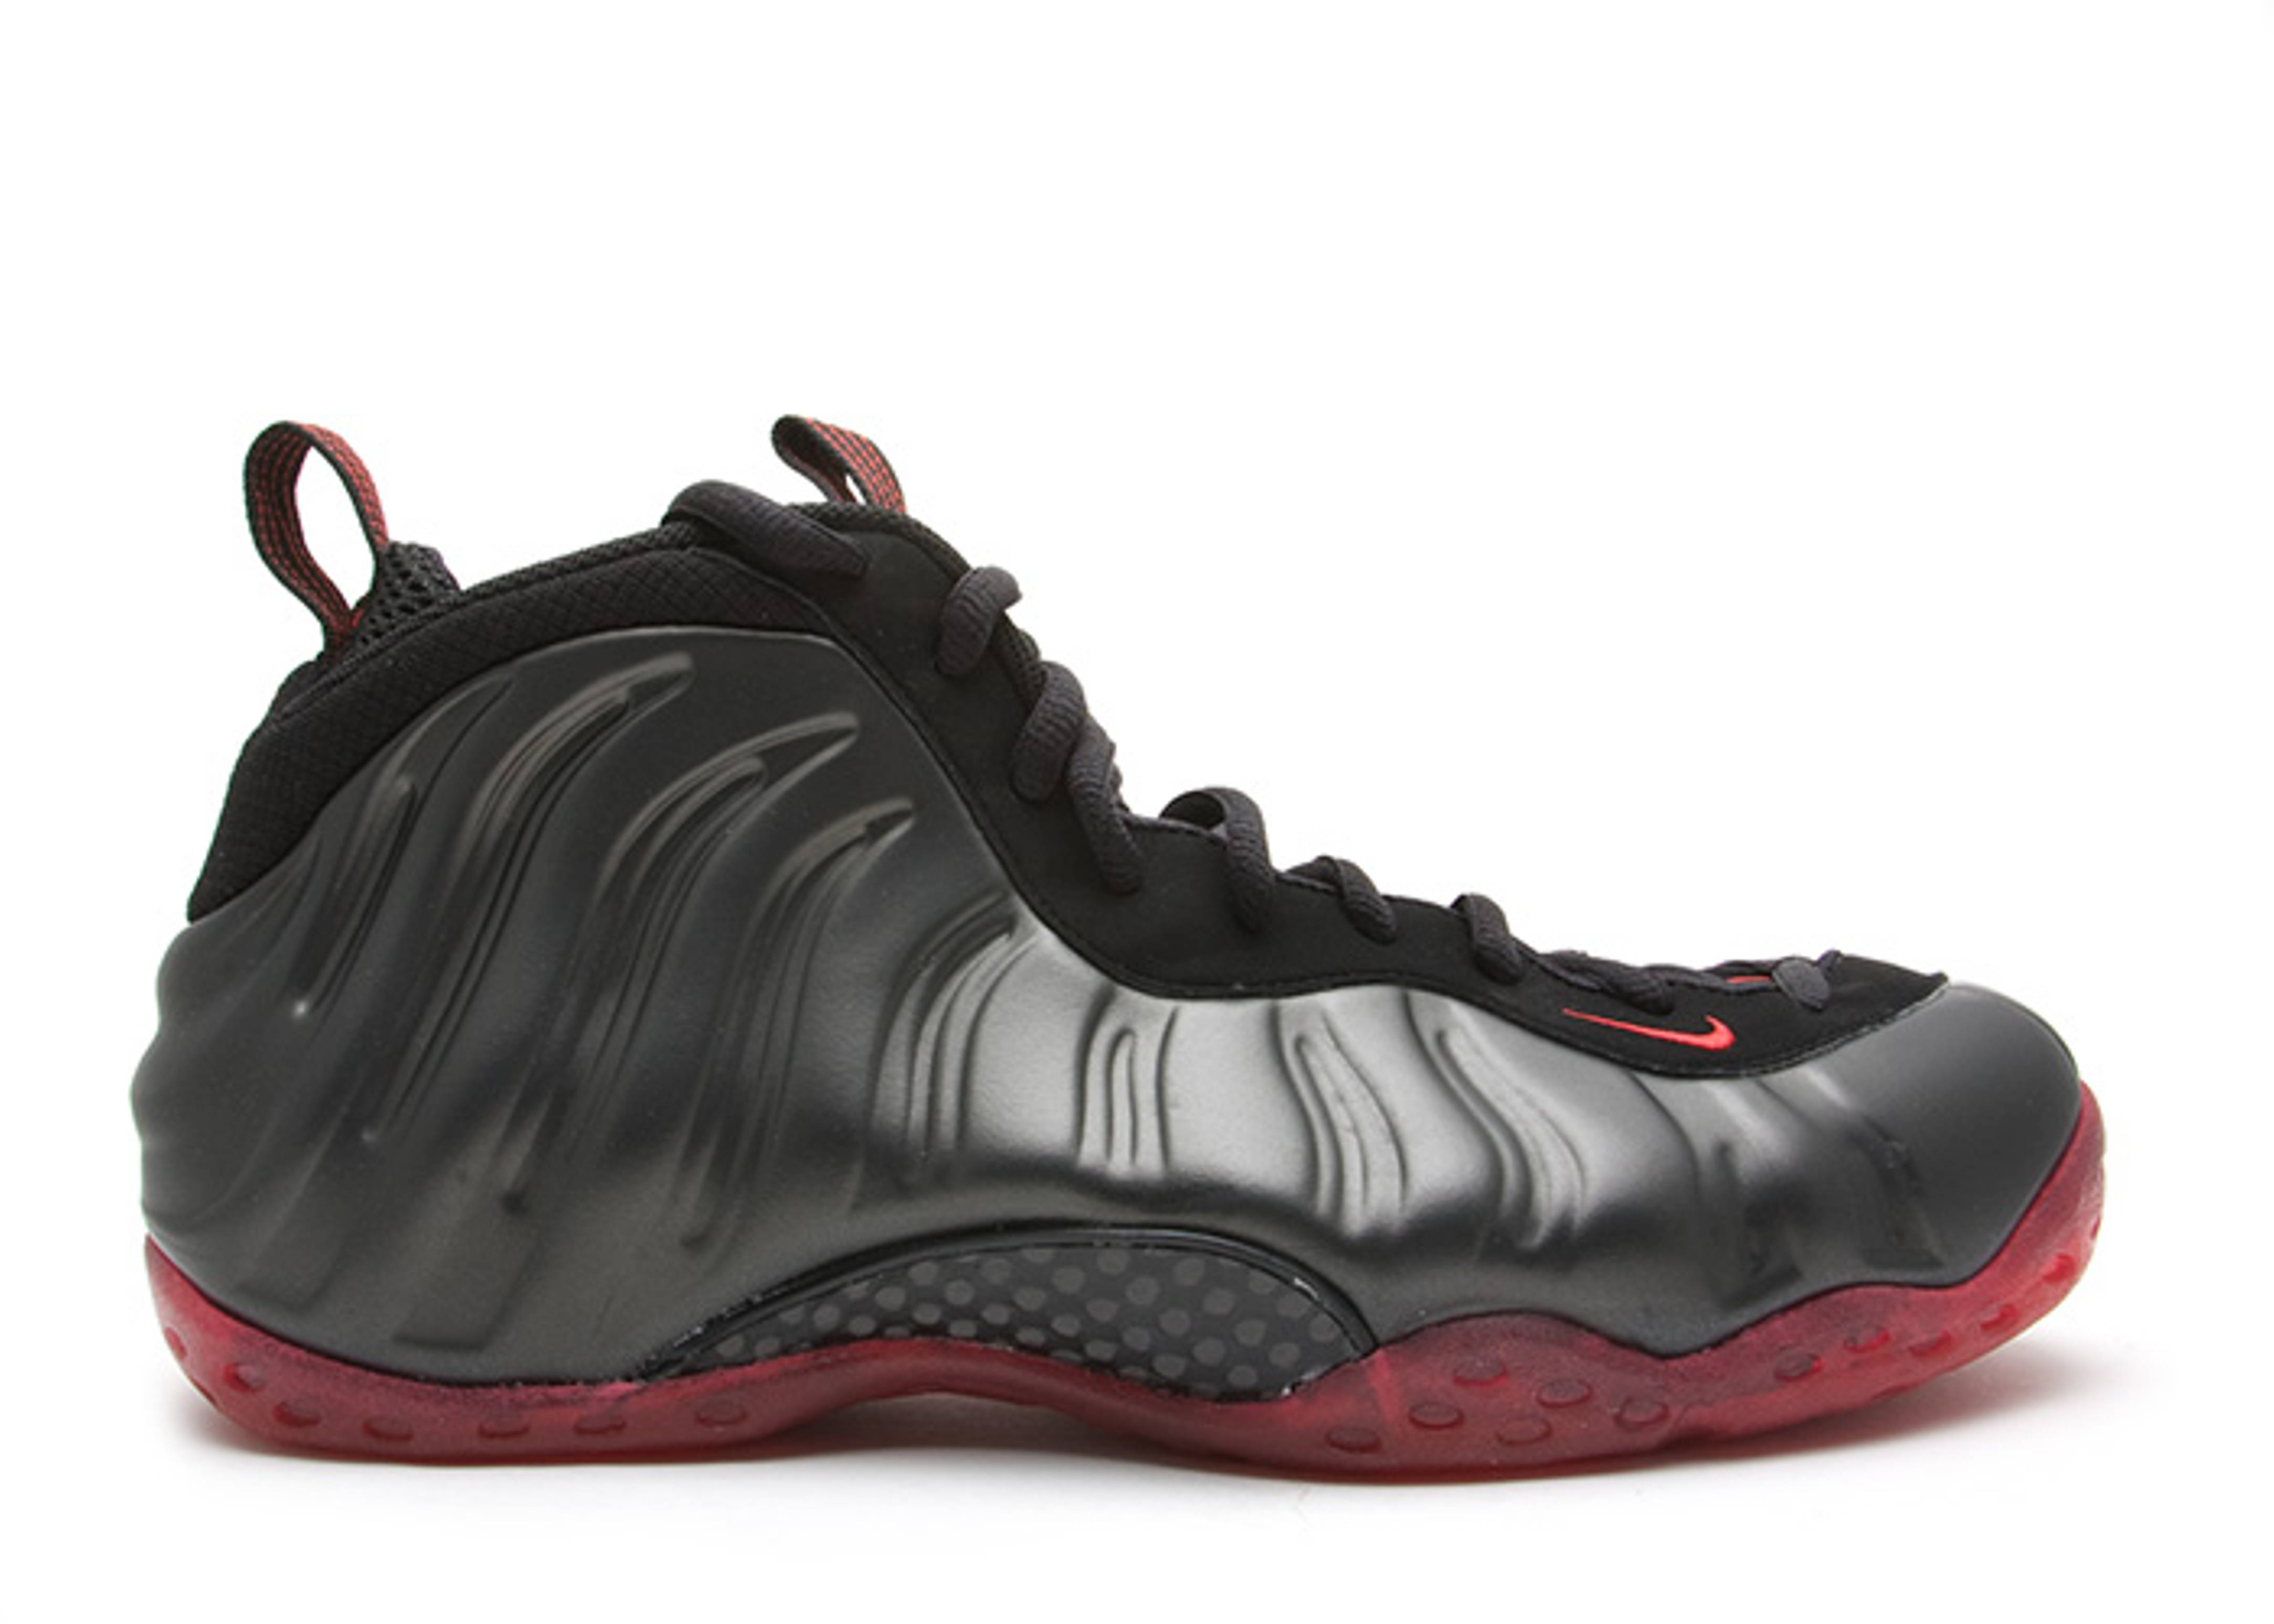 Nike WMNS Air Foamposite One Particle Beige Trendy ...